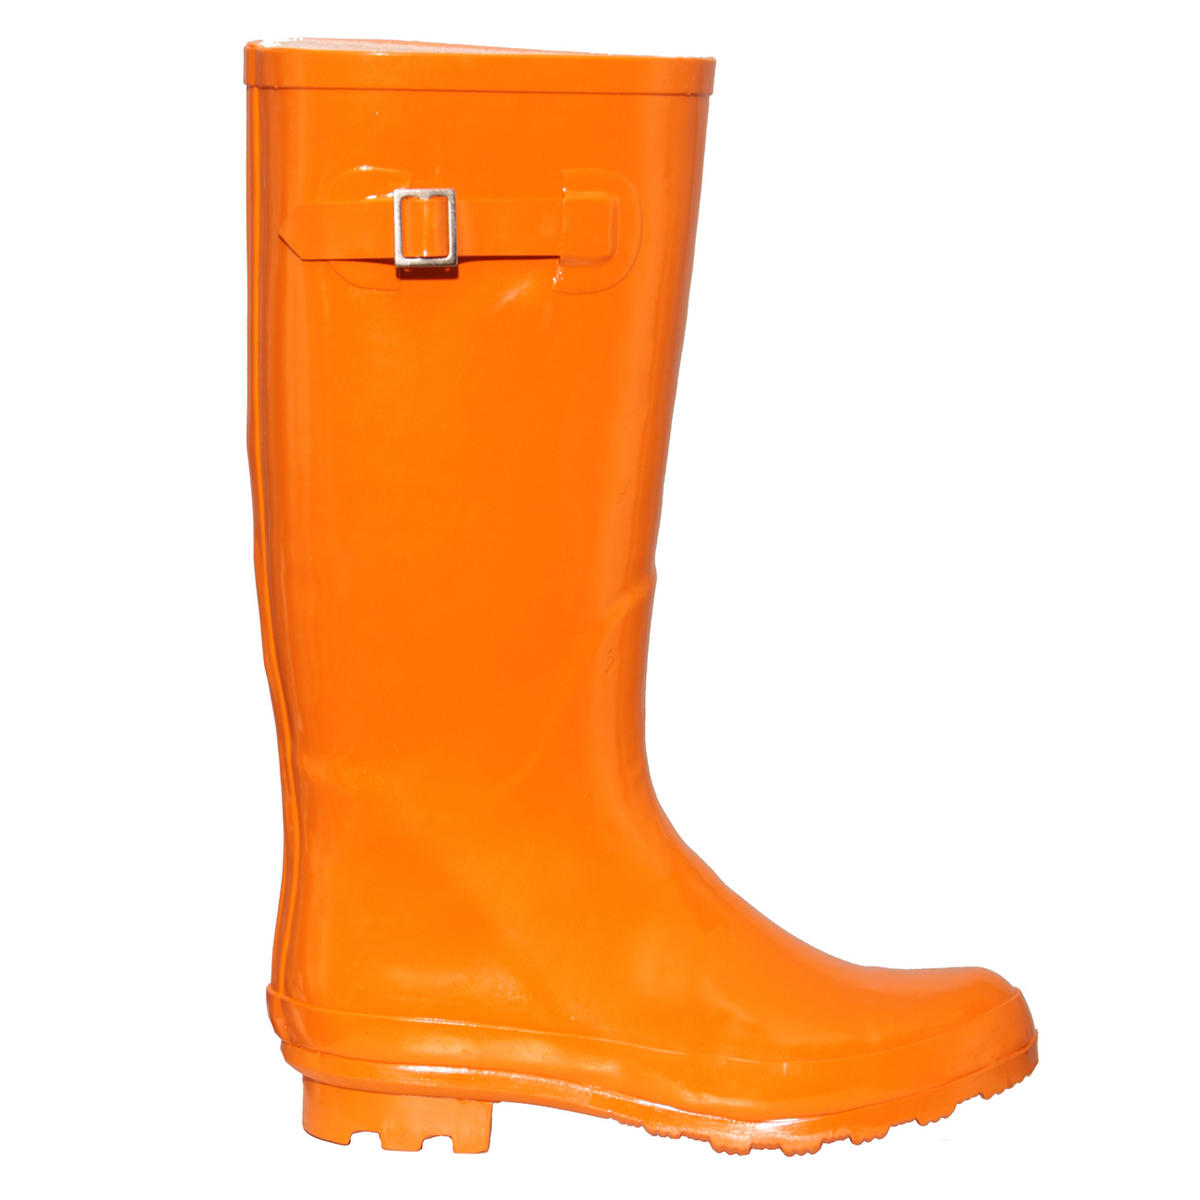 Orange Wellington Boot Preview